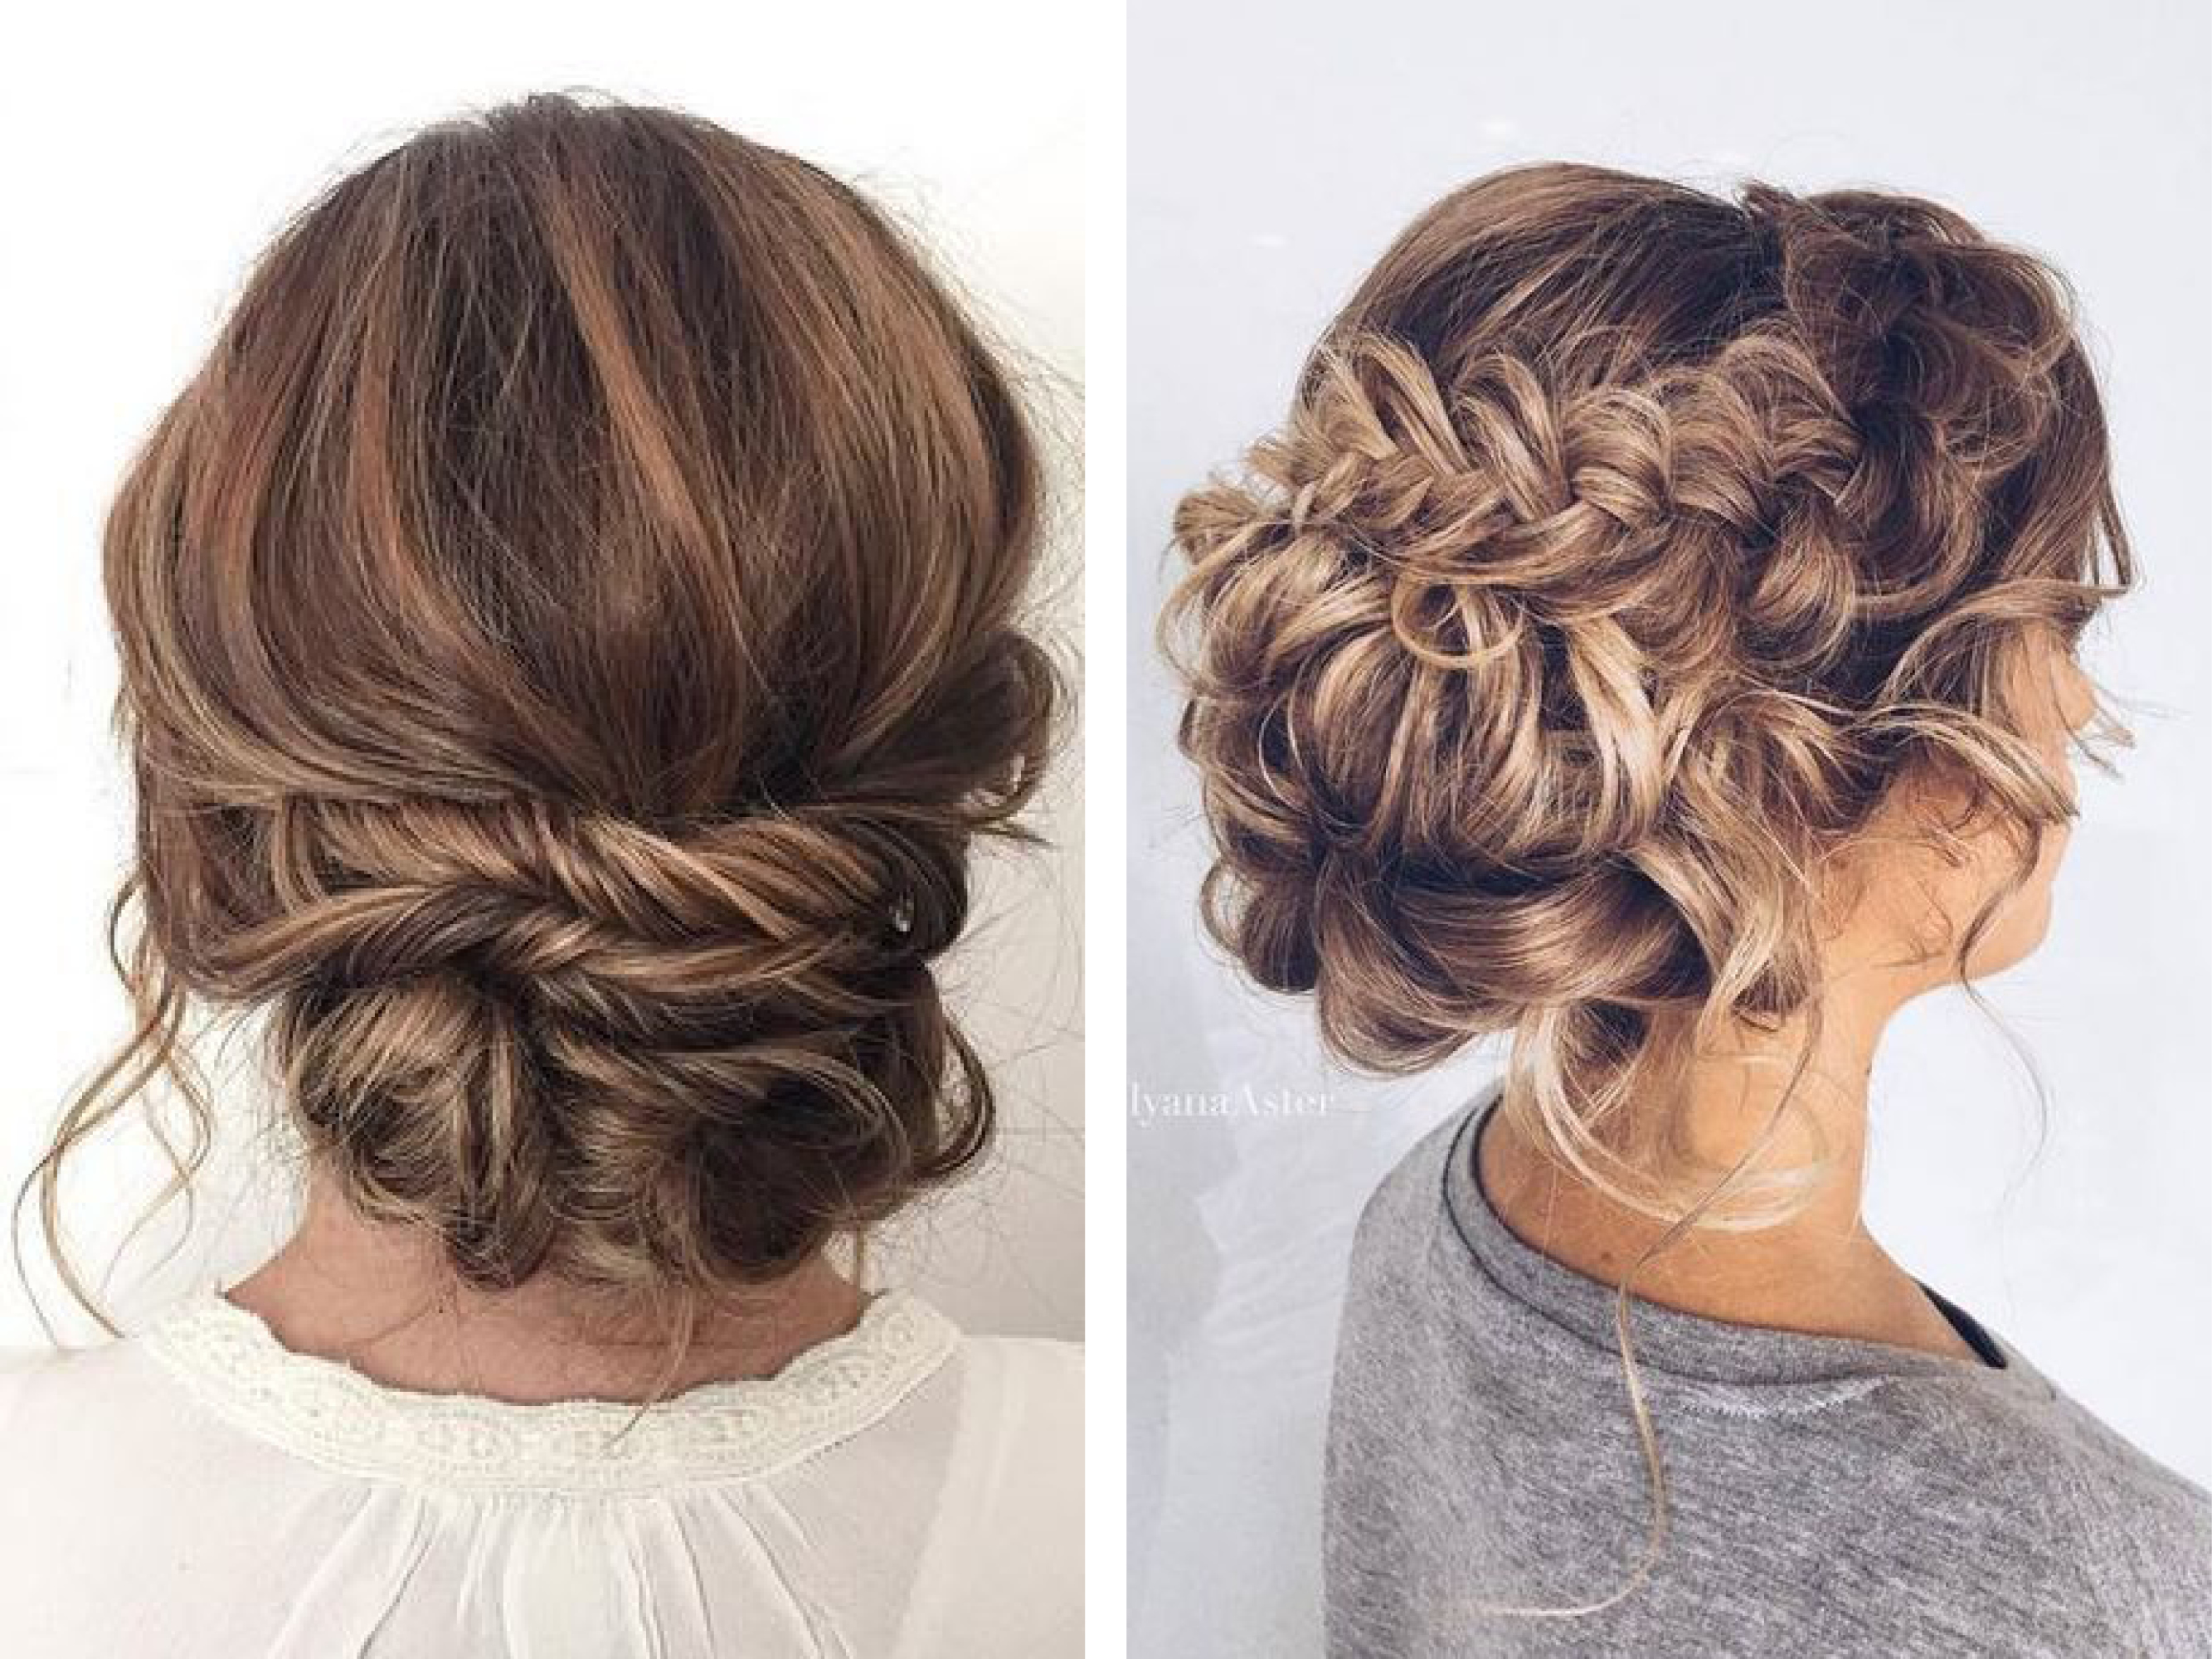 wearing hair up styles wedding inspiration hairstyles aime couture 4975 | c